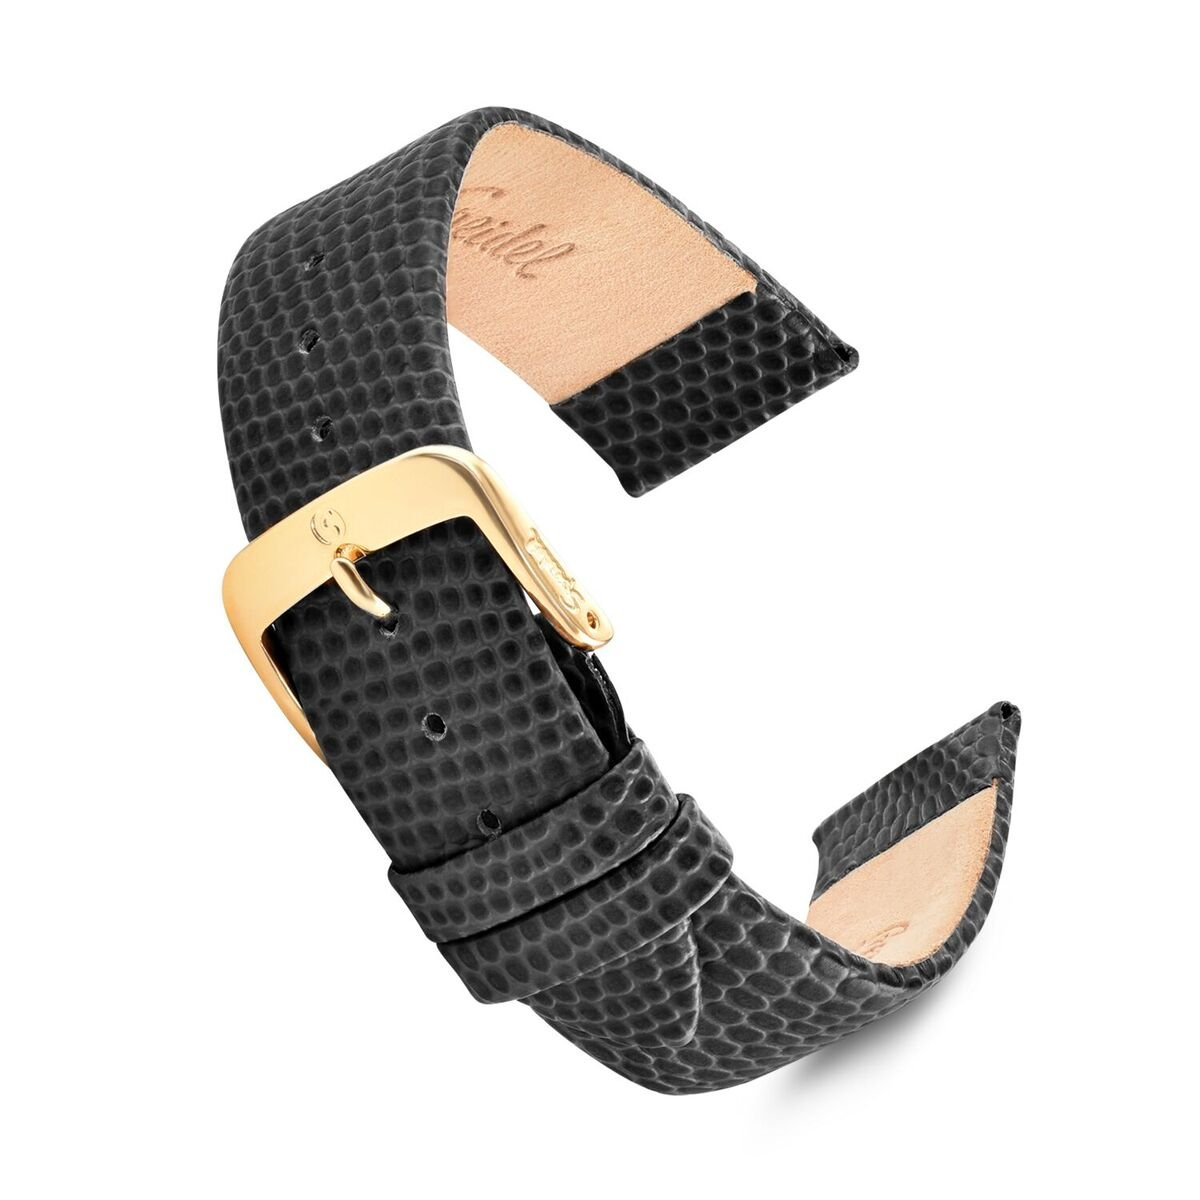 Speidel Genuine Leather Lizard Grain Watch Band 22mm Long Black Replacement Strap, Stainless Steel Metal Buckle Clasp, Watchband Fits Most Watch Brands